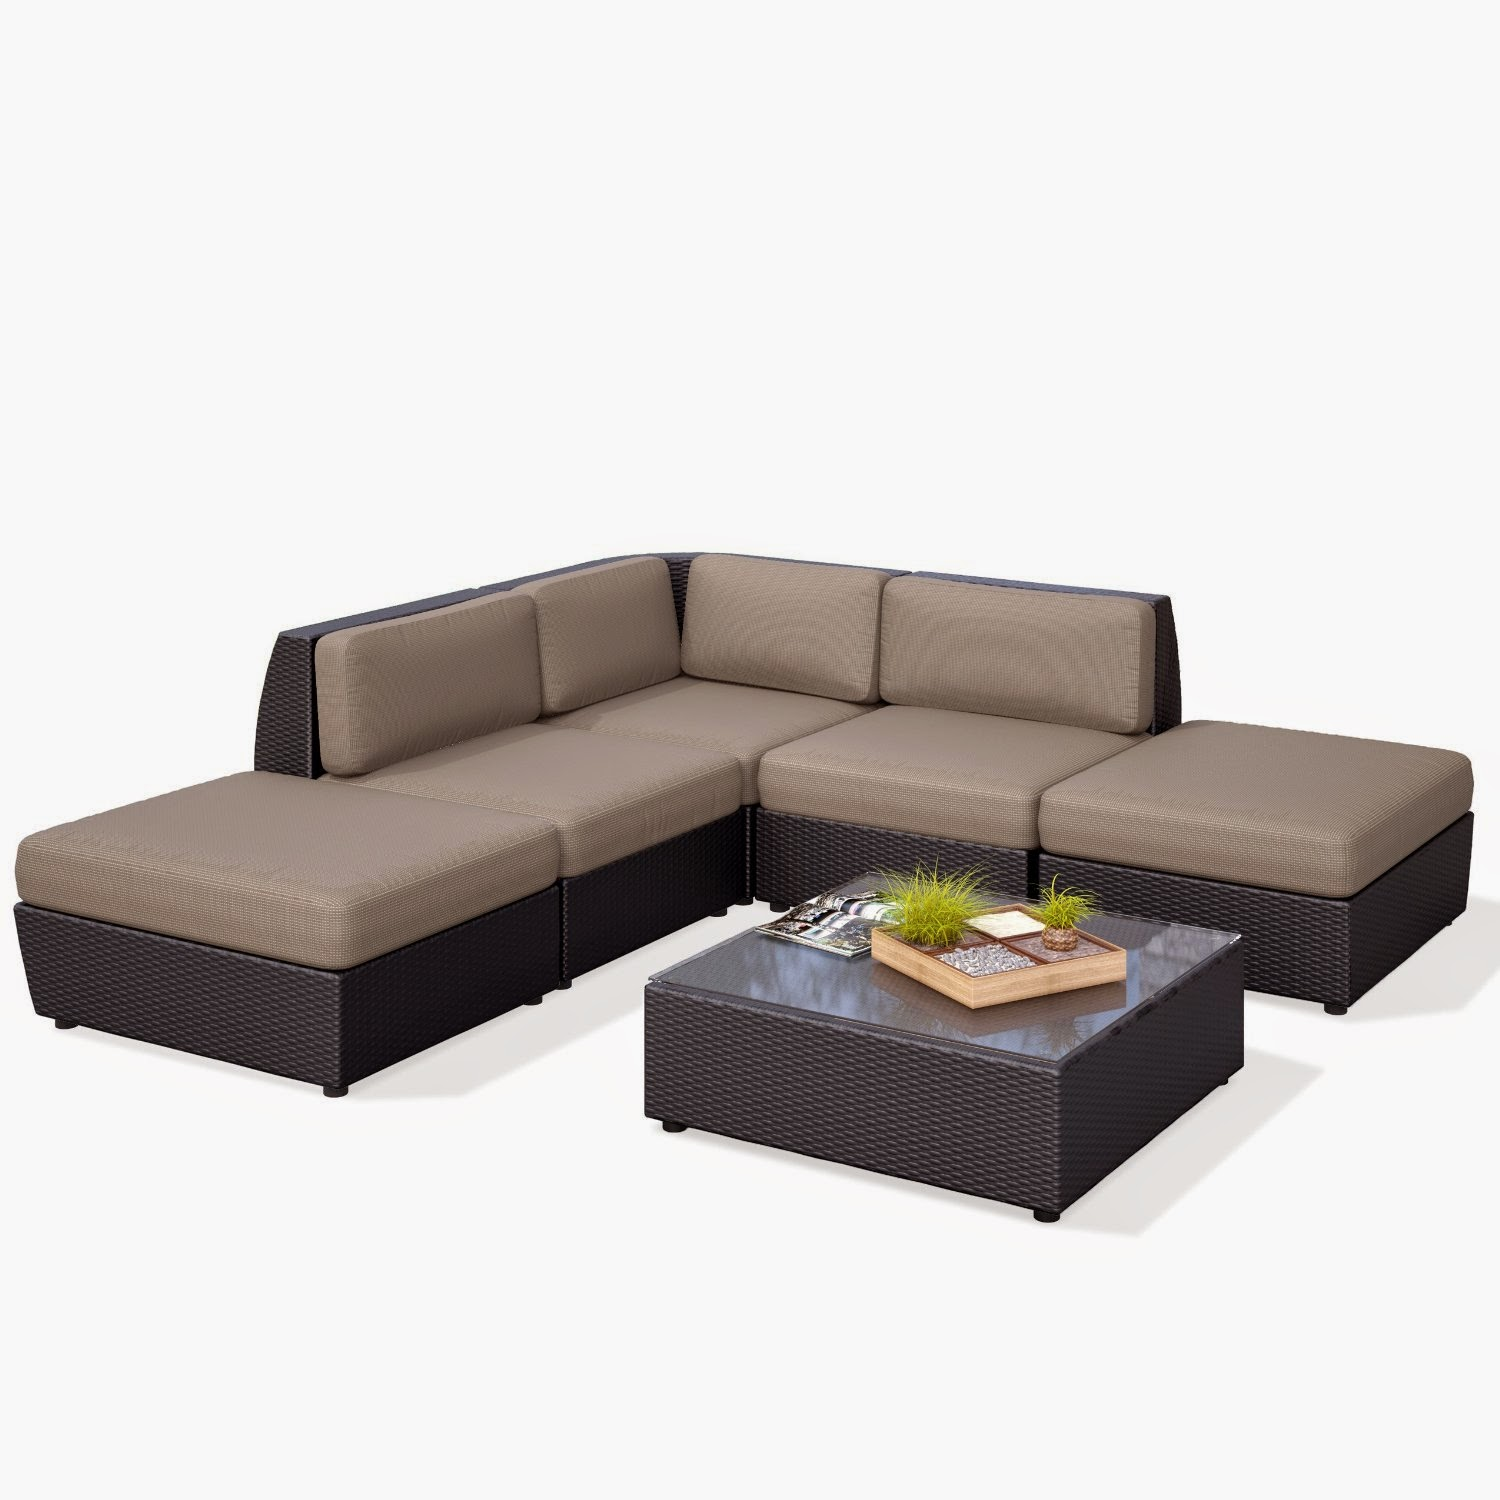 Sofa Sectionals With Chaise Tables Pottery Barn Curved Website Reviews Sectional